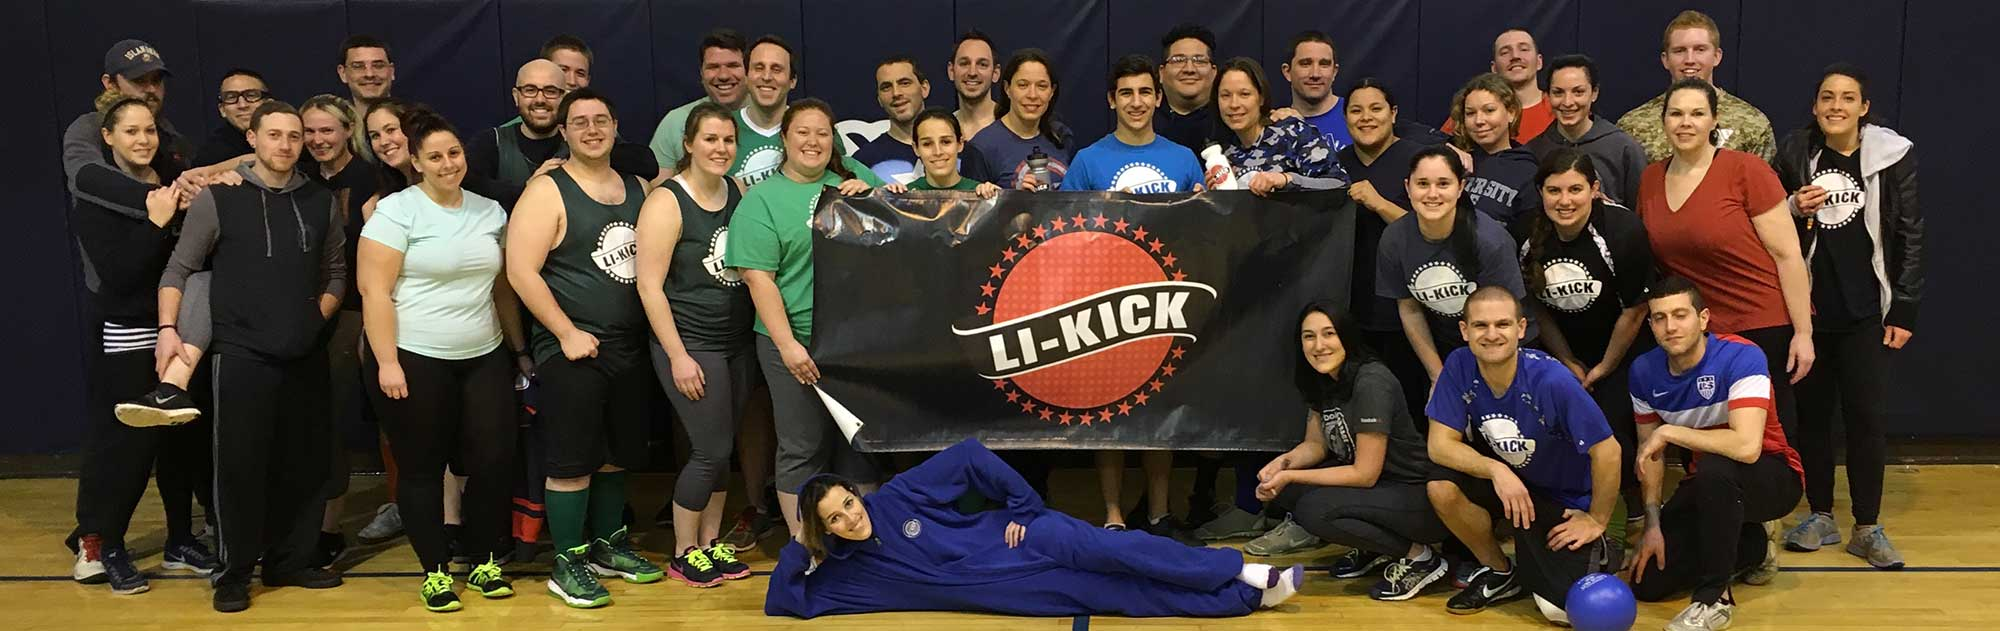 Winter Kickball Glen Cove                     Thursday & Tuesday